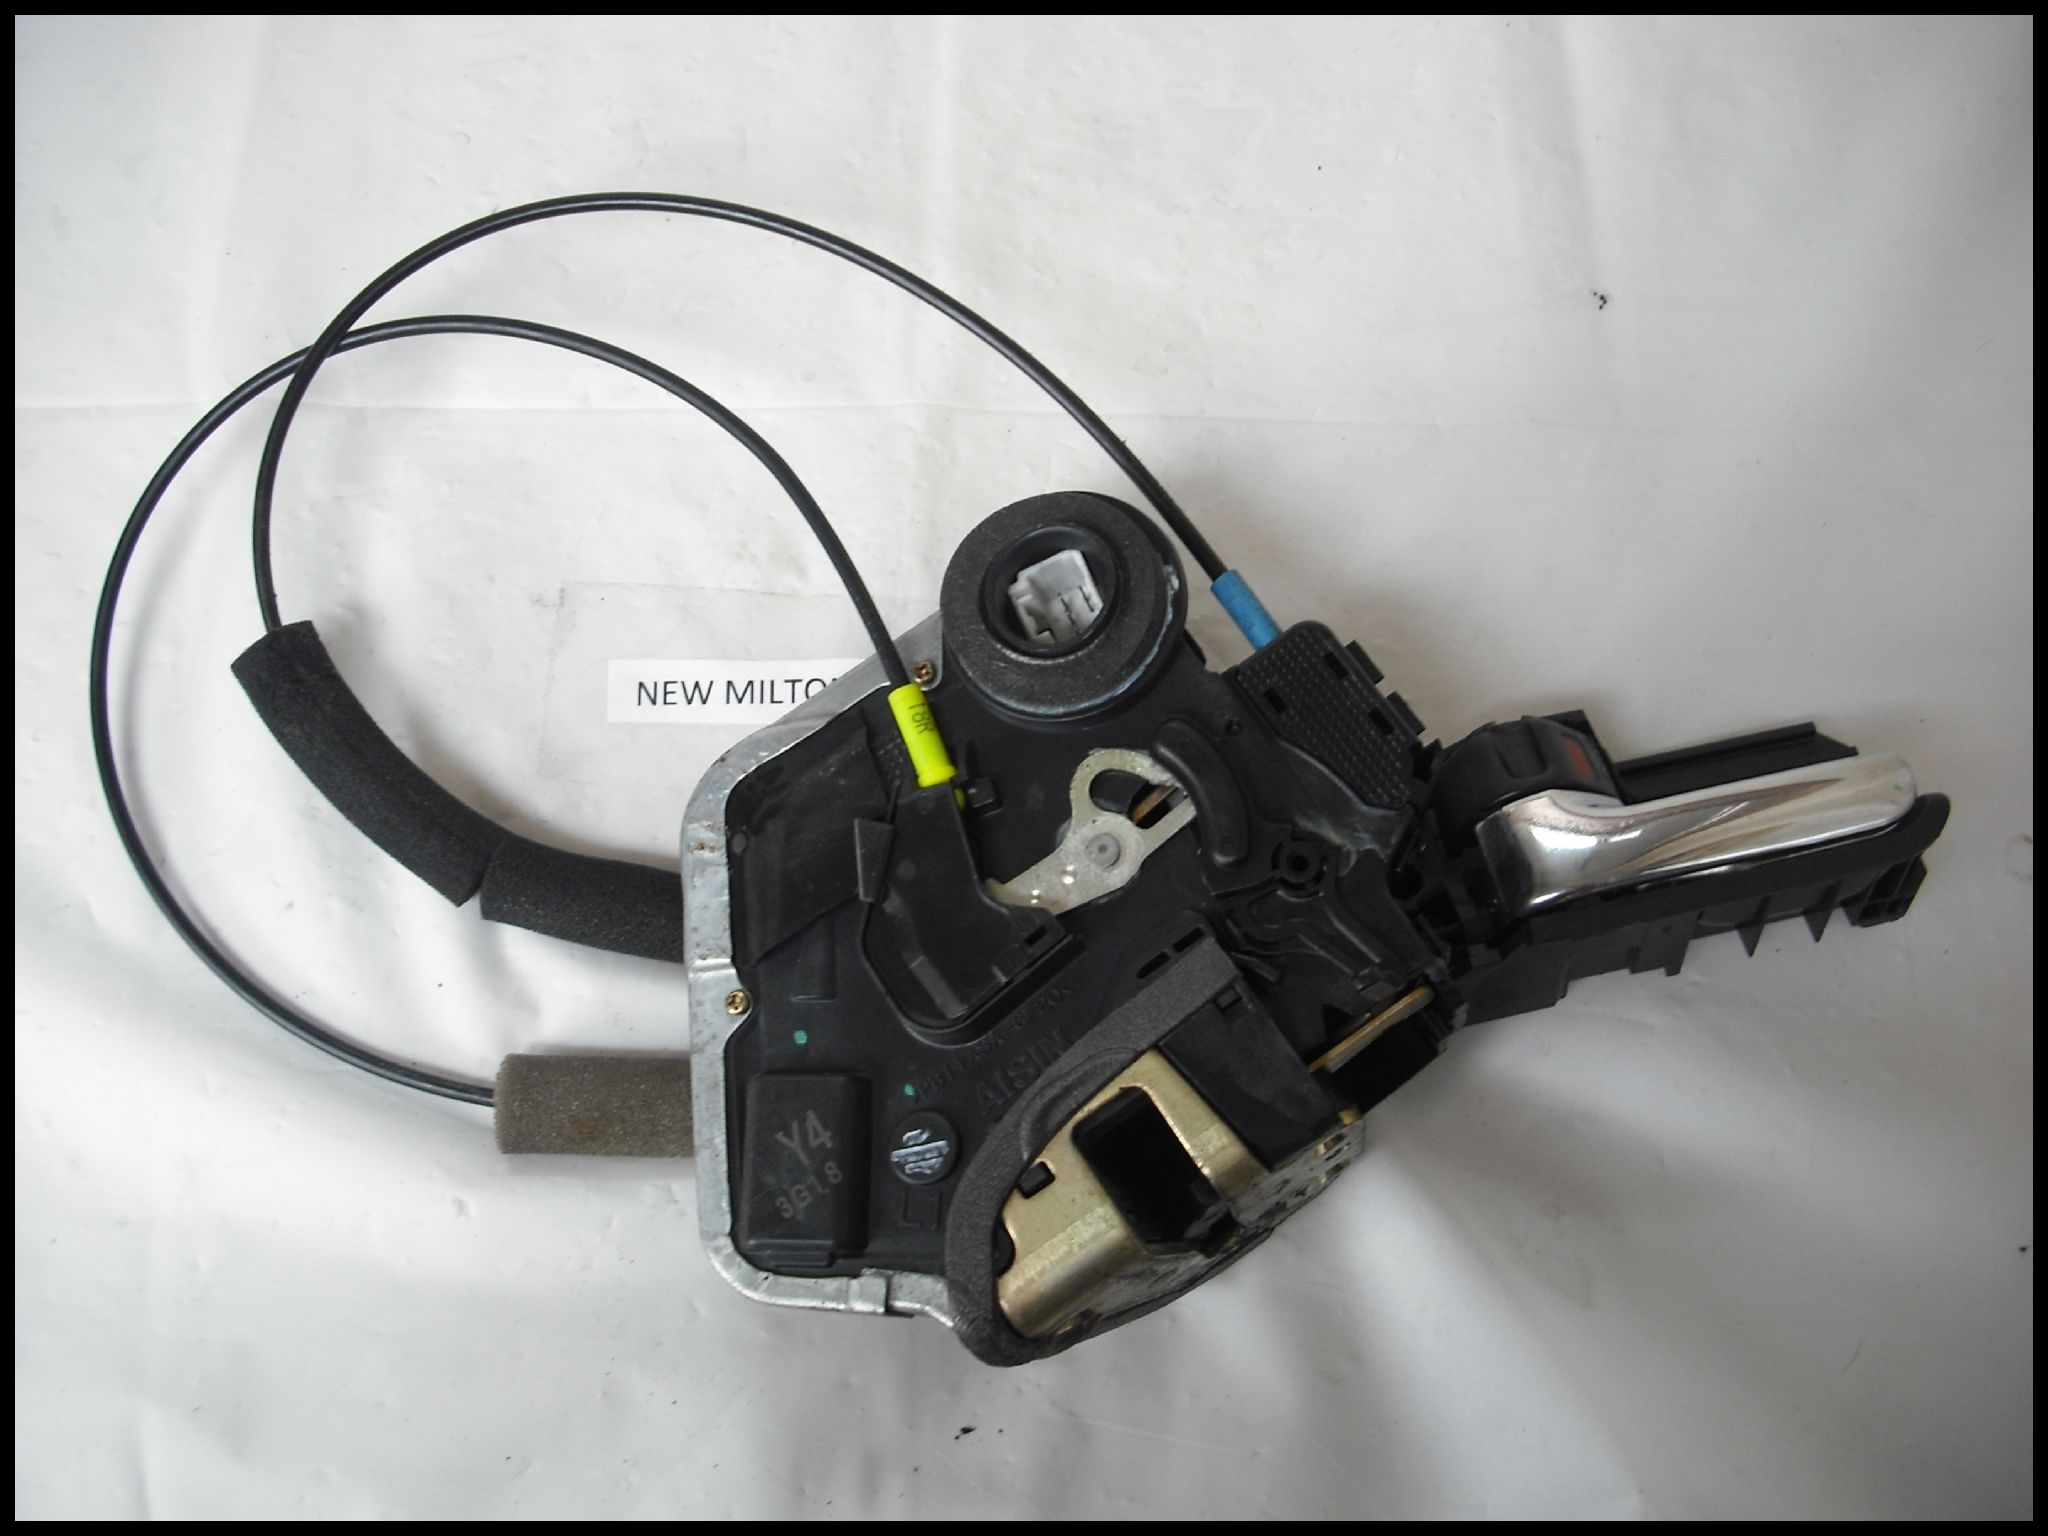 TOYOTA AVENSIS MK2 REAR DOOR CATCH WITH CENTRAL LOCKING ACTUATOR N S LEFT